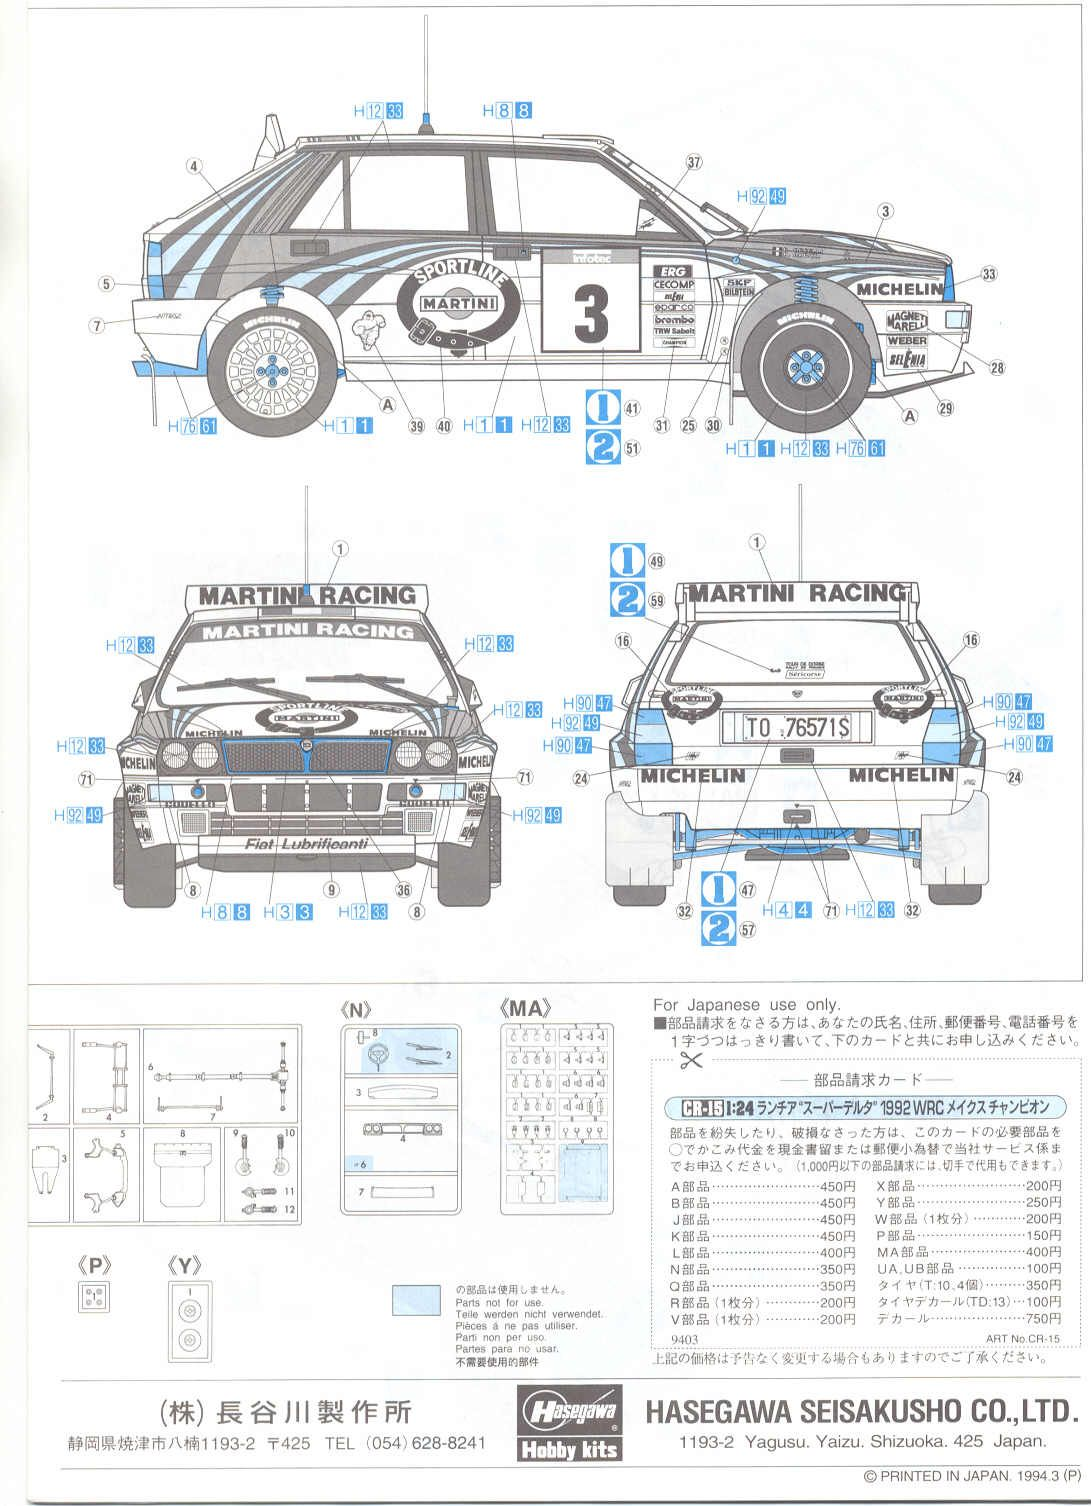 Lancia delta hf integrale 16v 1989 sanremo rally smcars lancia delta hf integrale 16v 1989 sanremo rally smcars car blueprints forum malvernweather Images